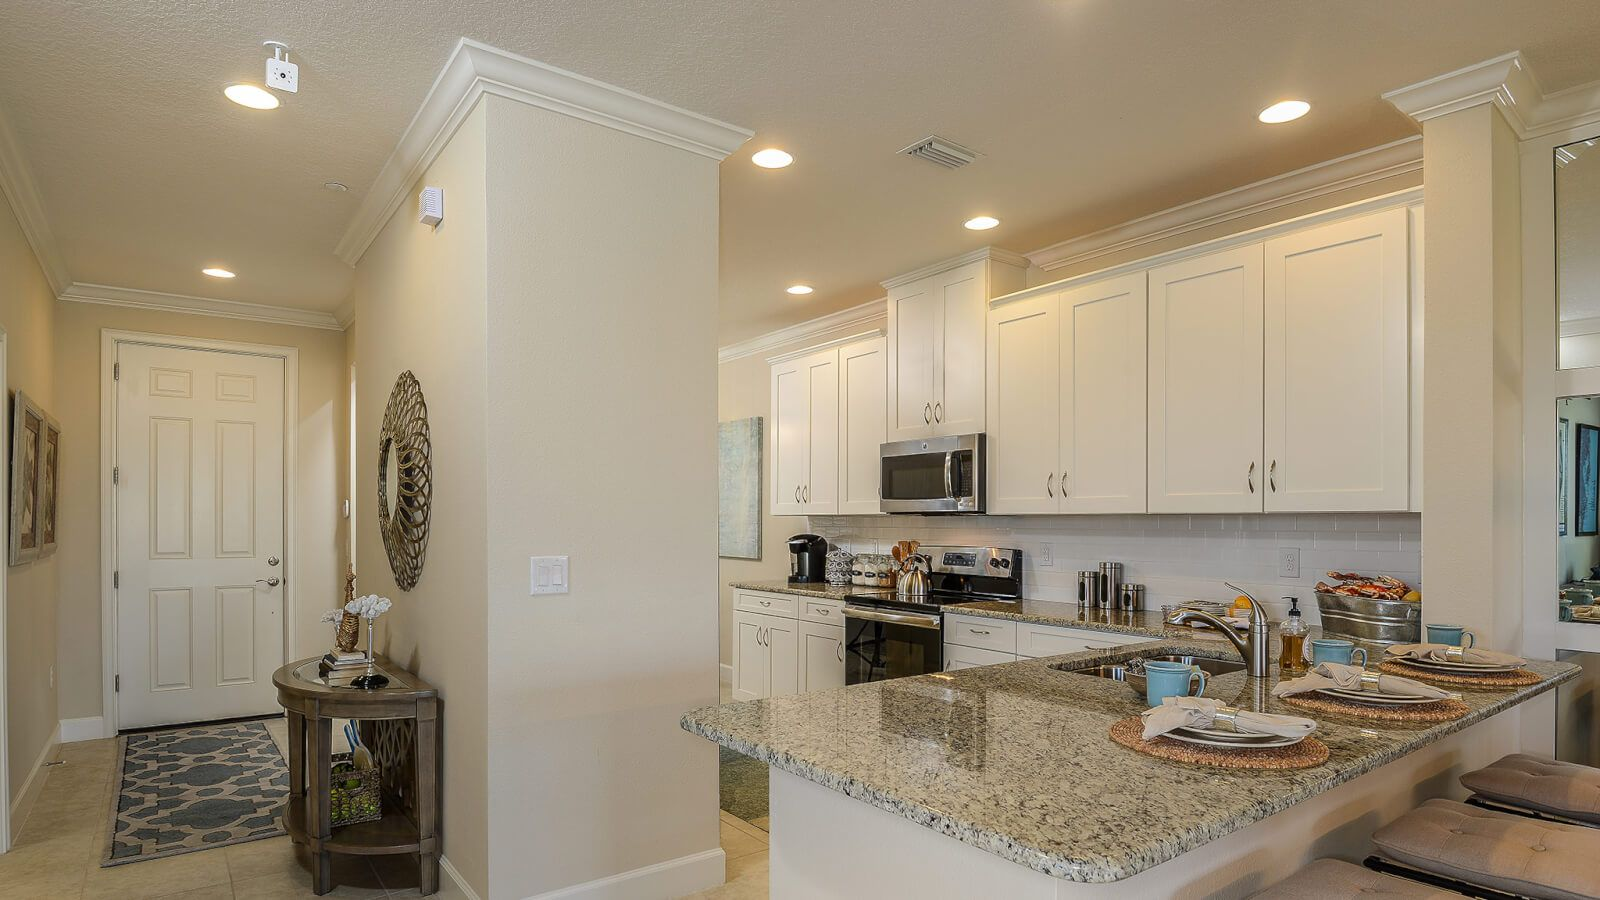 Kitchen featured in the Caserta VII By Taylor Morrison in Naples, FL